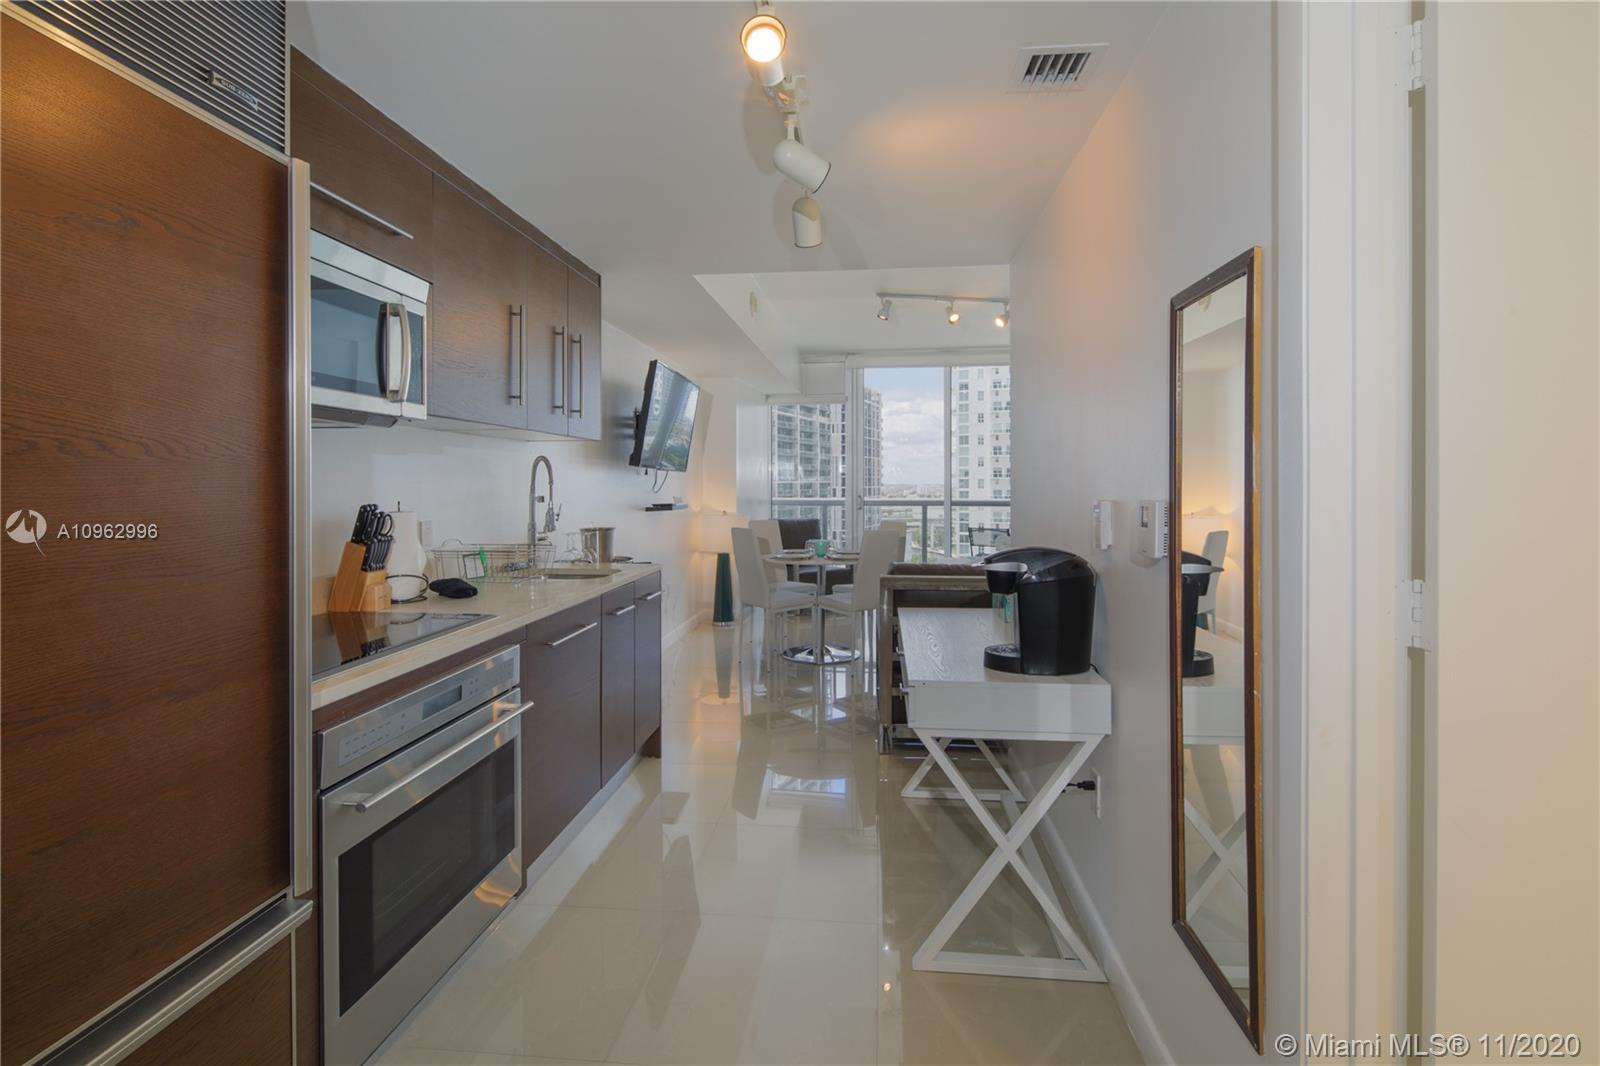 Icon Brickell 3 #1705 - 485 Brickell Ave #1705, Miami, FL 33131